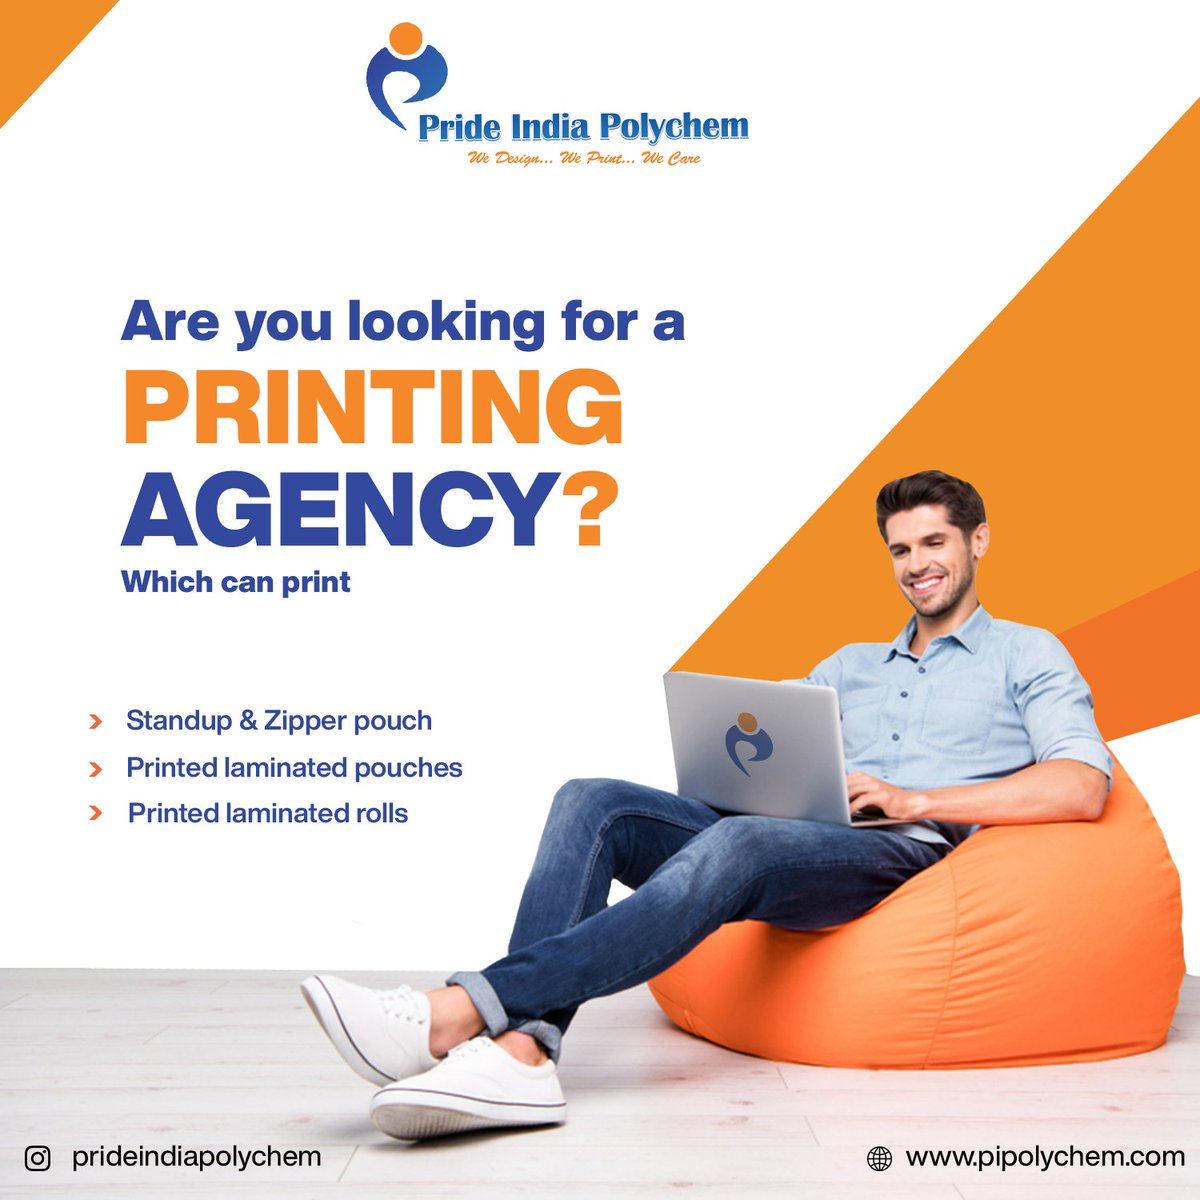 One-stop solution for a variety of packaging materials #printing #laminatedprinting #wednesdaythought  #bhfyp #plasticprinting #prideindiapolychem  Contact us at 9904910039 Visit us at